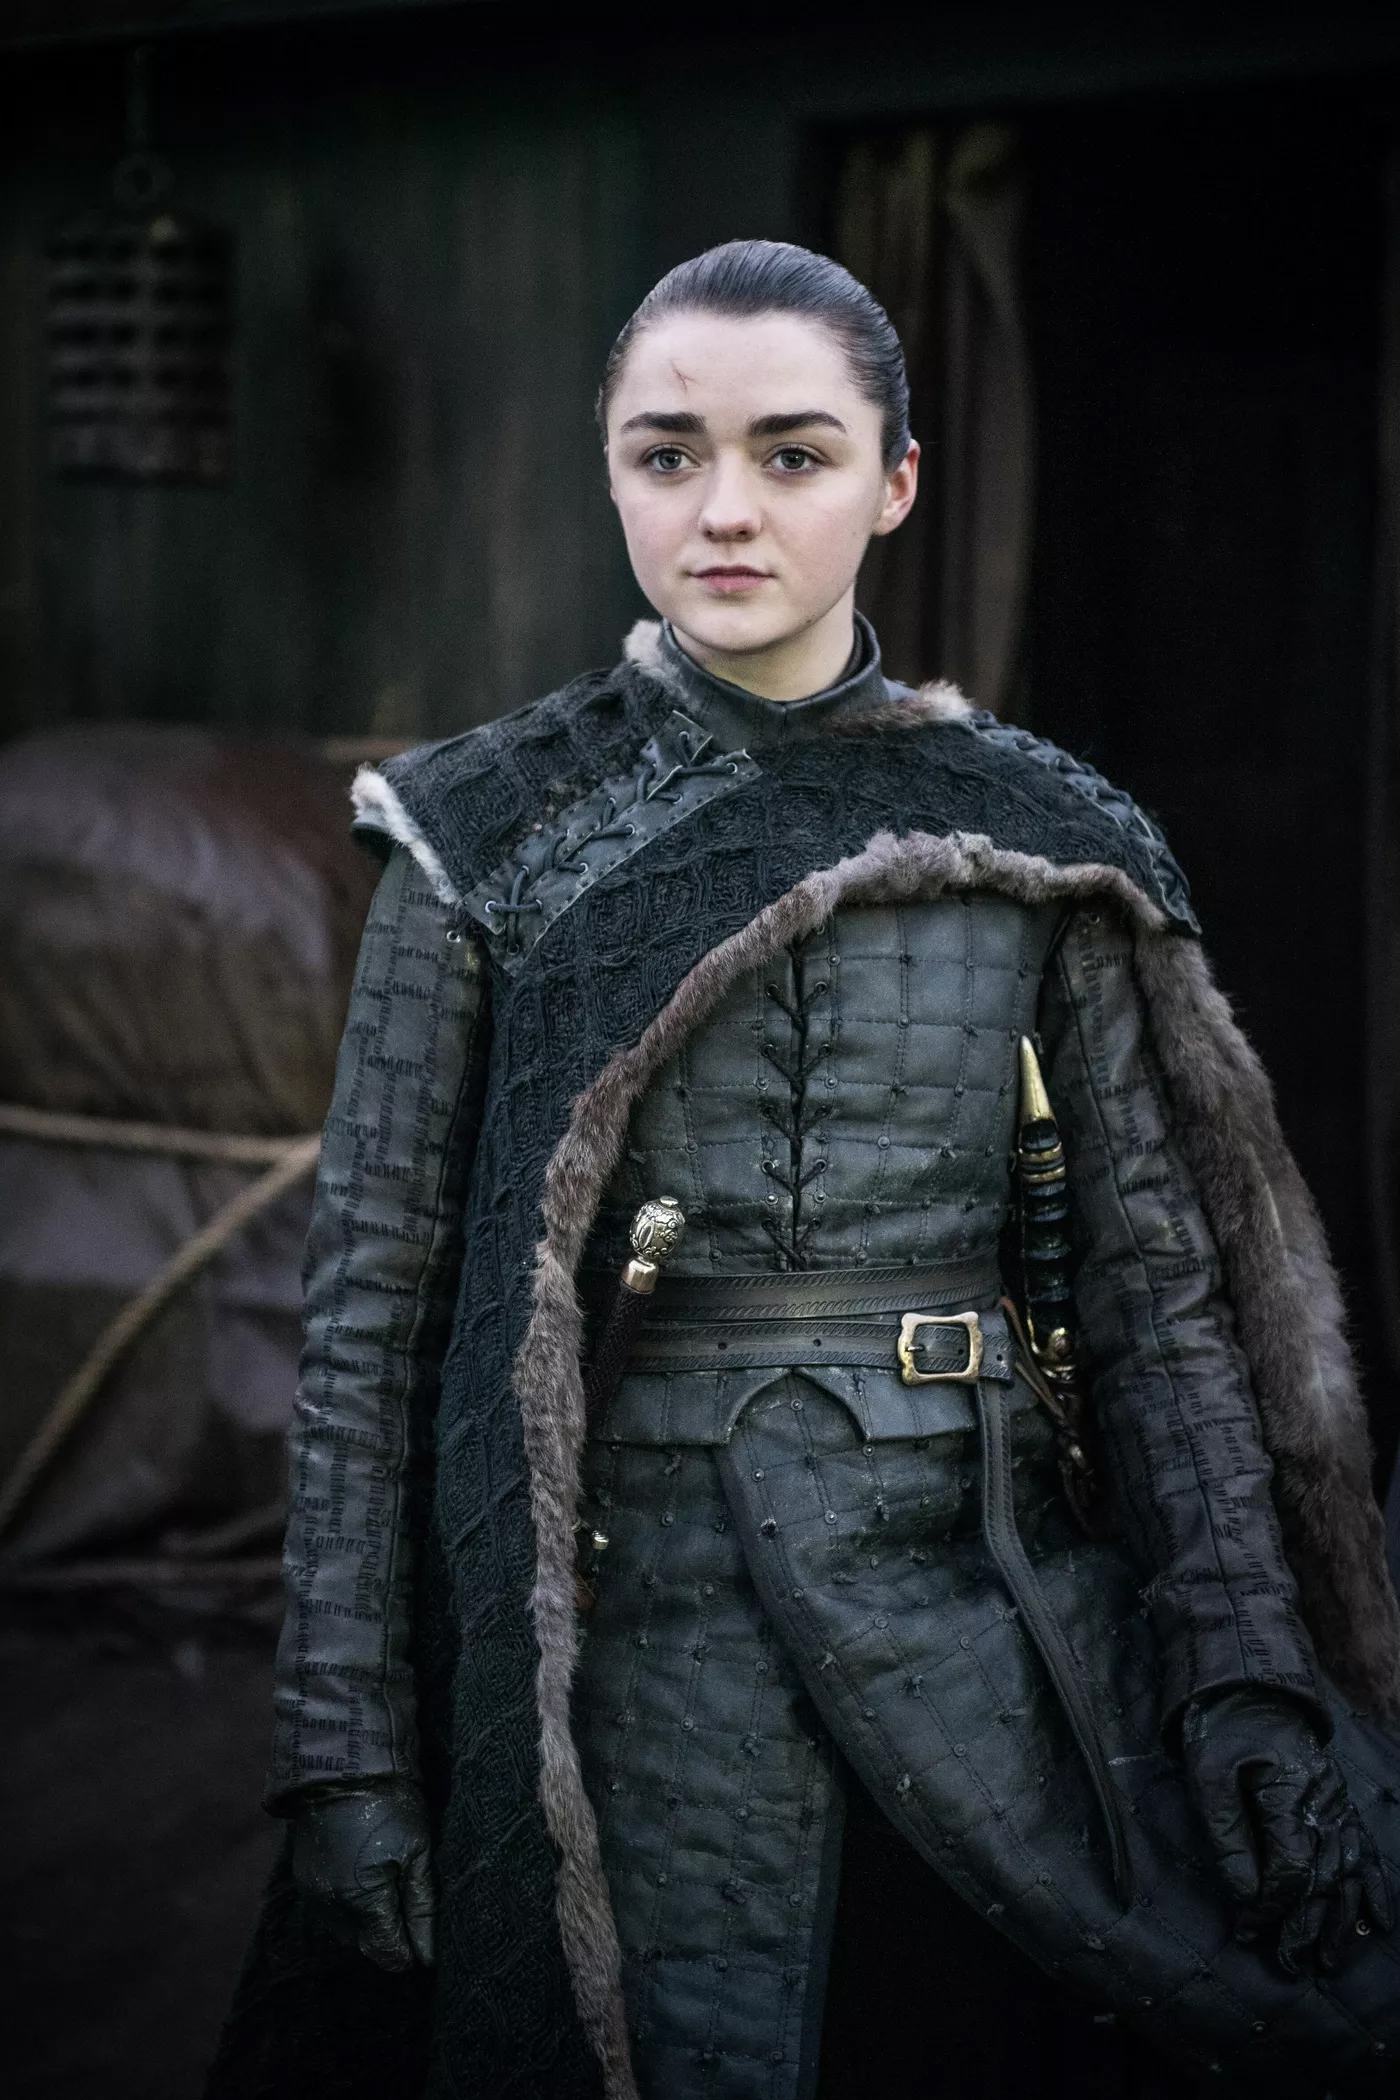 8x06 - The Iron trône - Arya